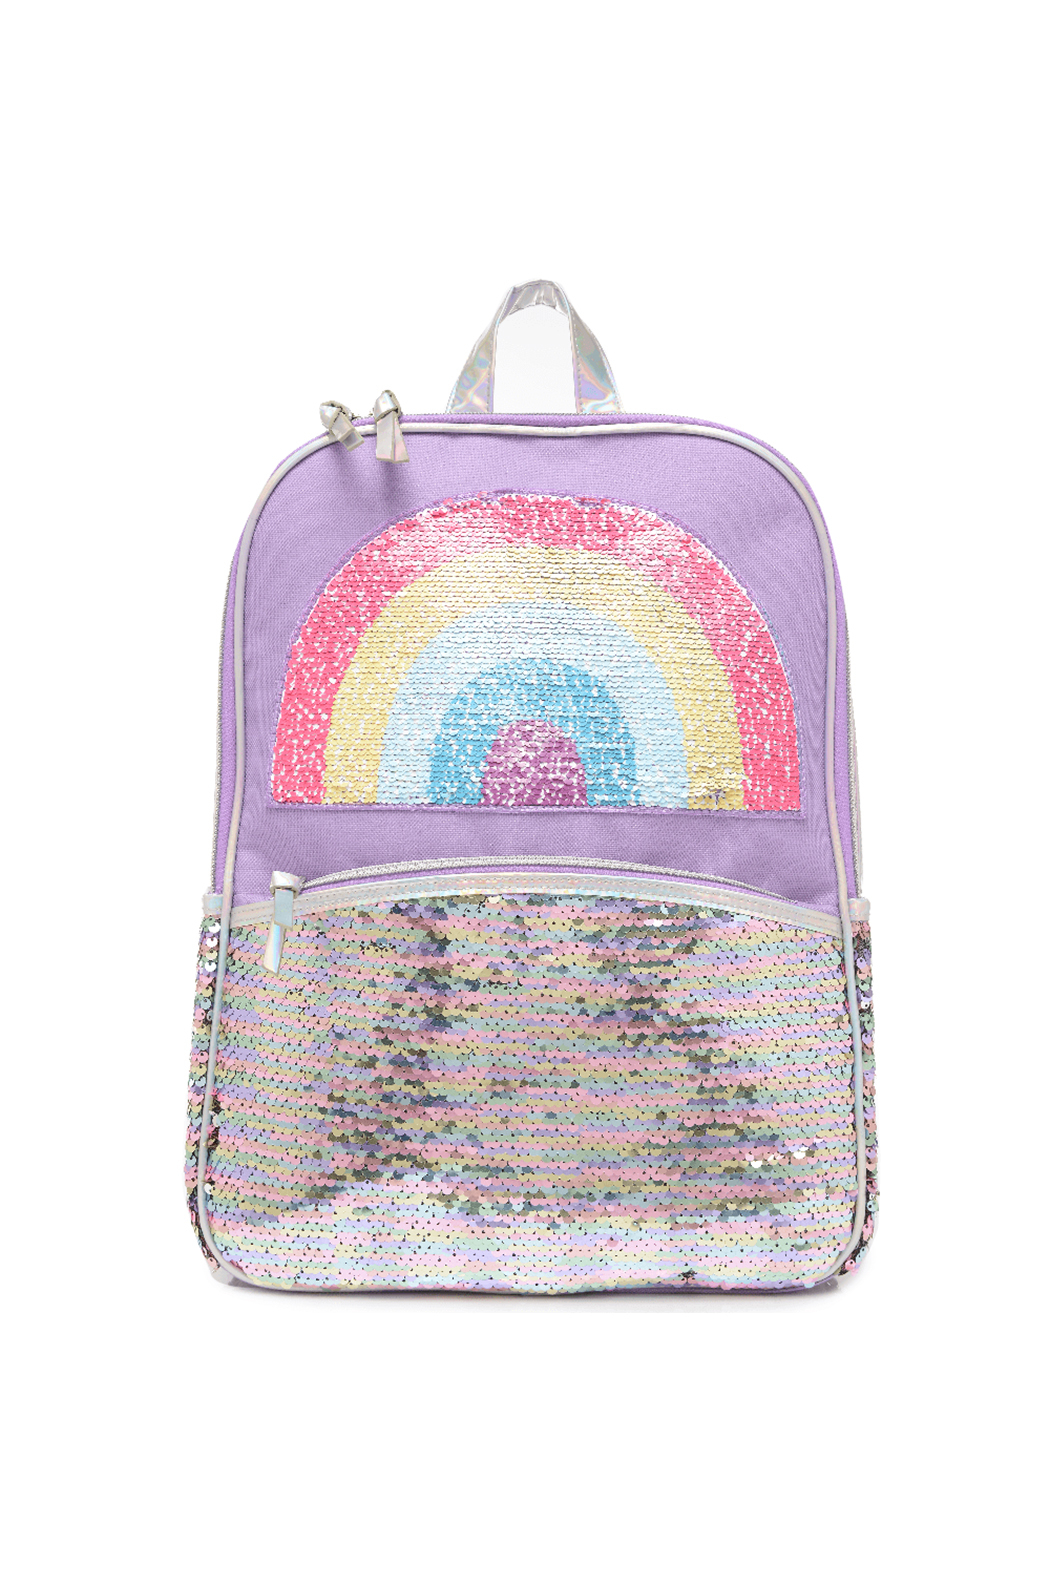 Me Oui Reversible Sequins Unicorn Backpack - Front Cropped Image